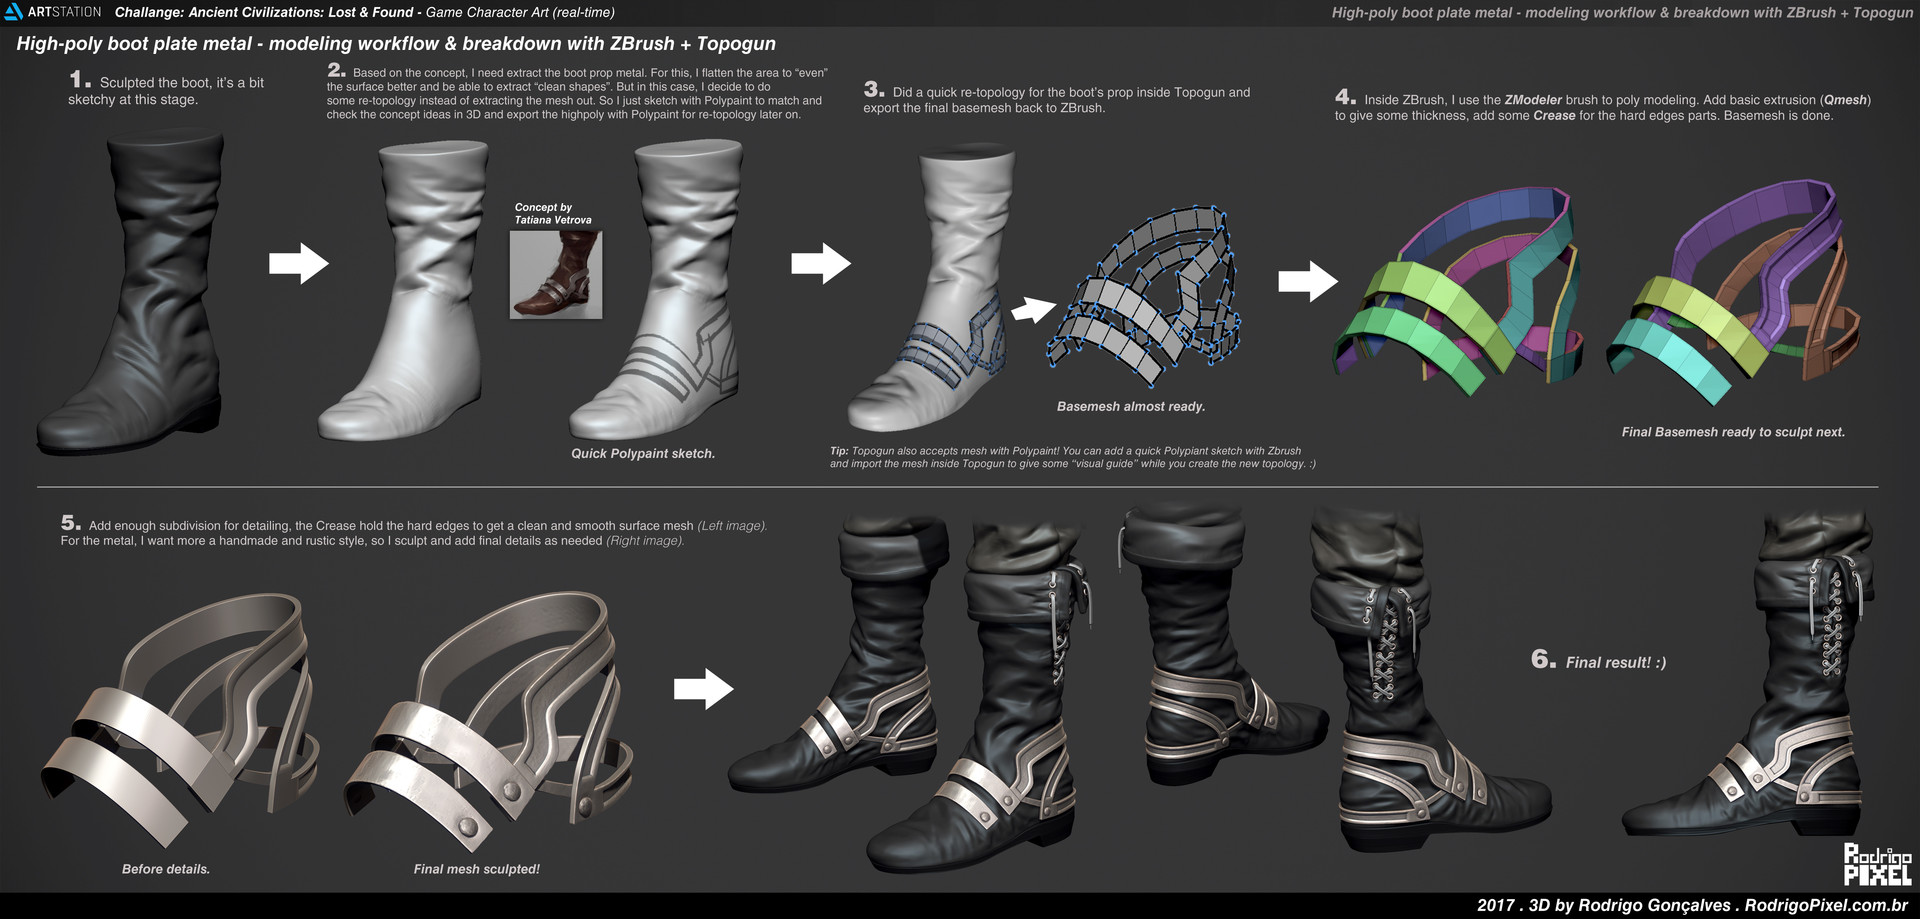 rodrigo-goncalves-blacksmith-bootplate-breakdown.jpg